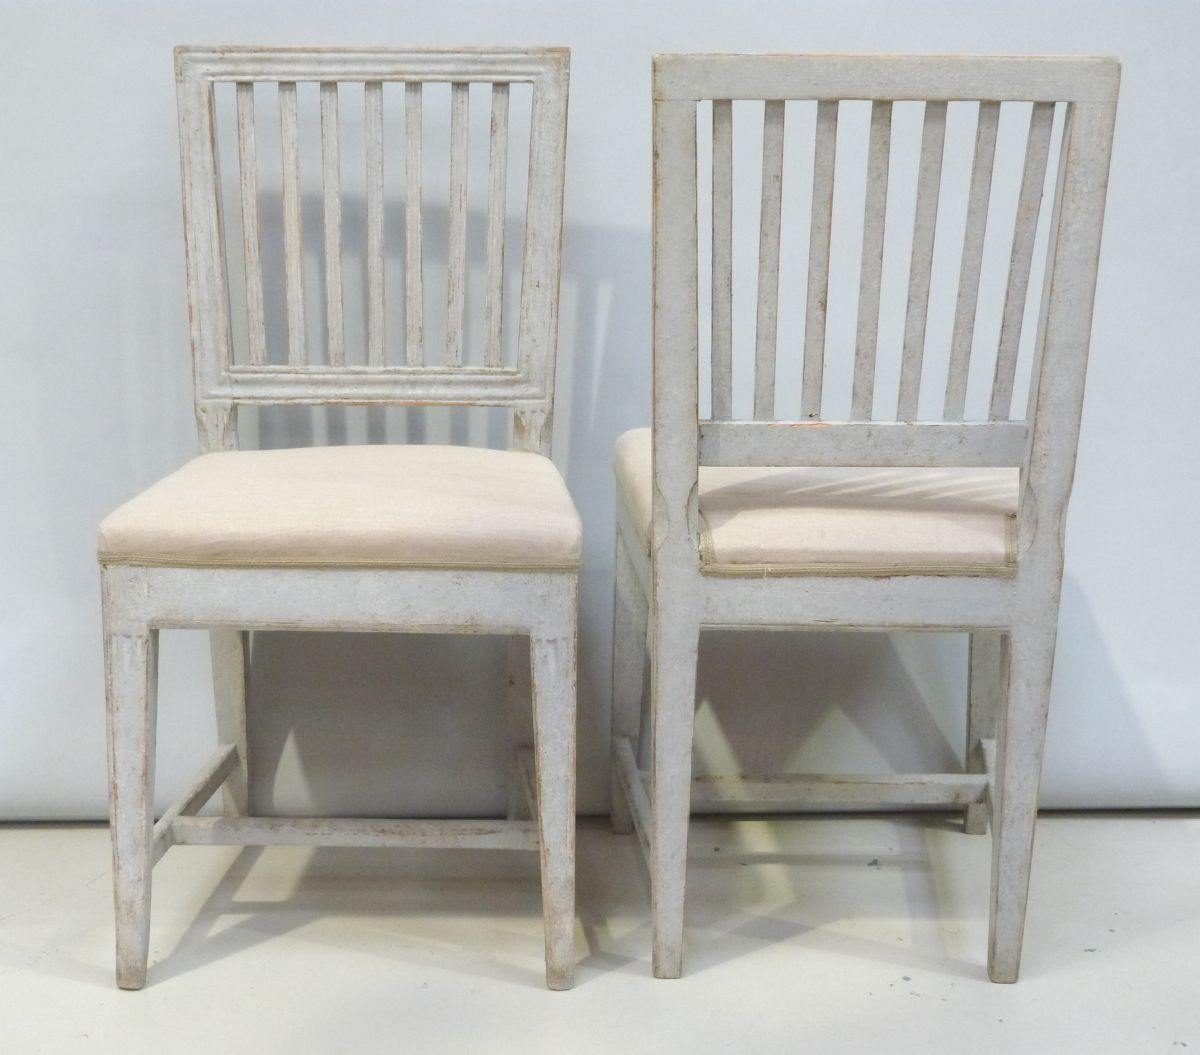 Swedish Leksand Dining Chairs Circa 1800 High Res Images